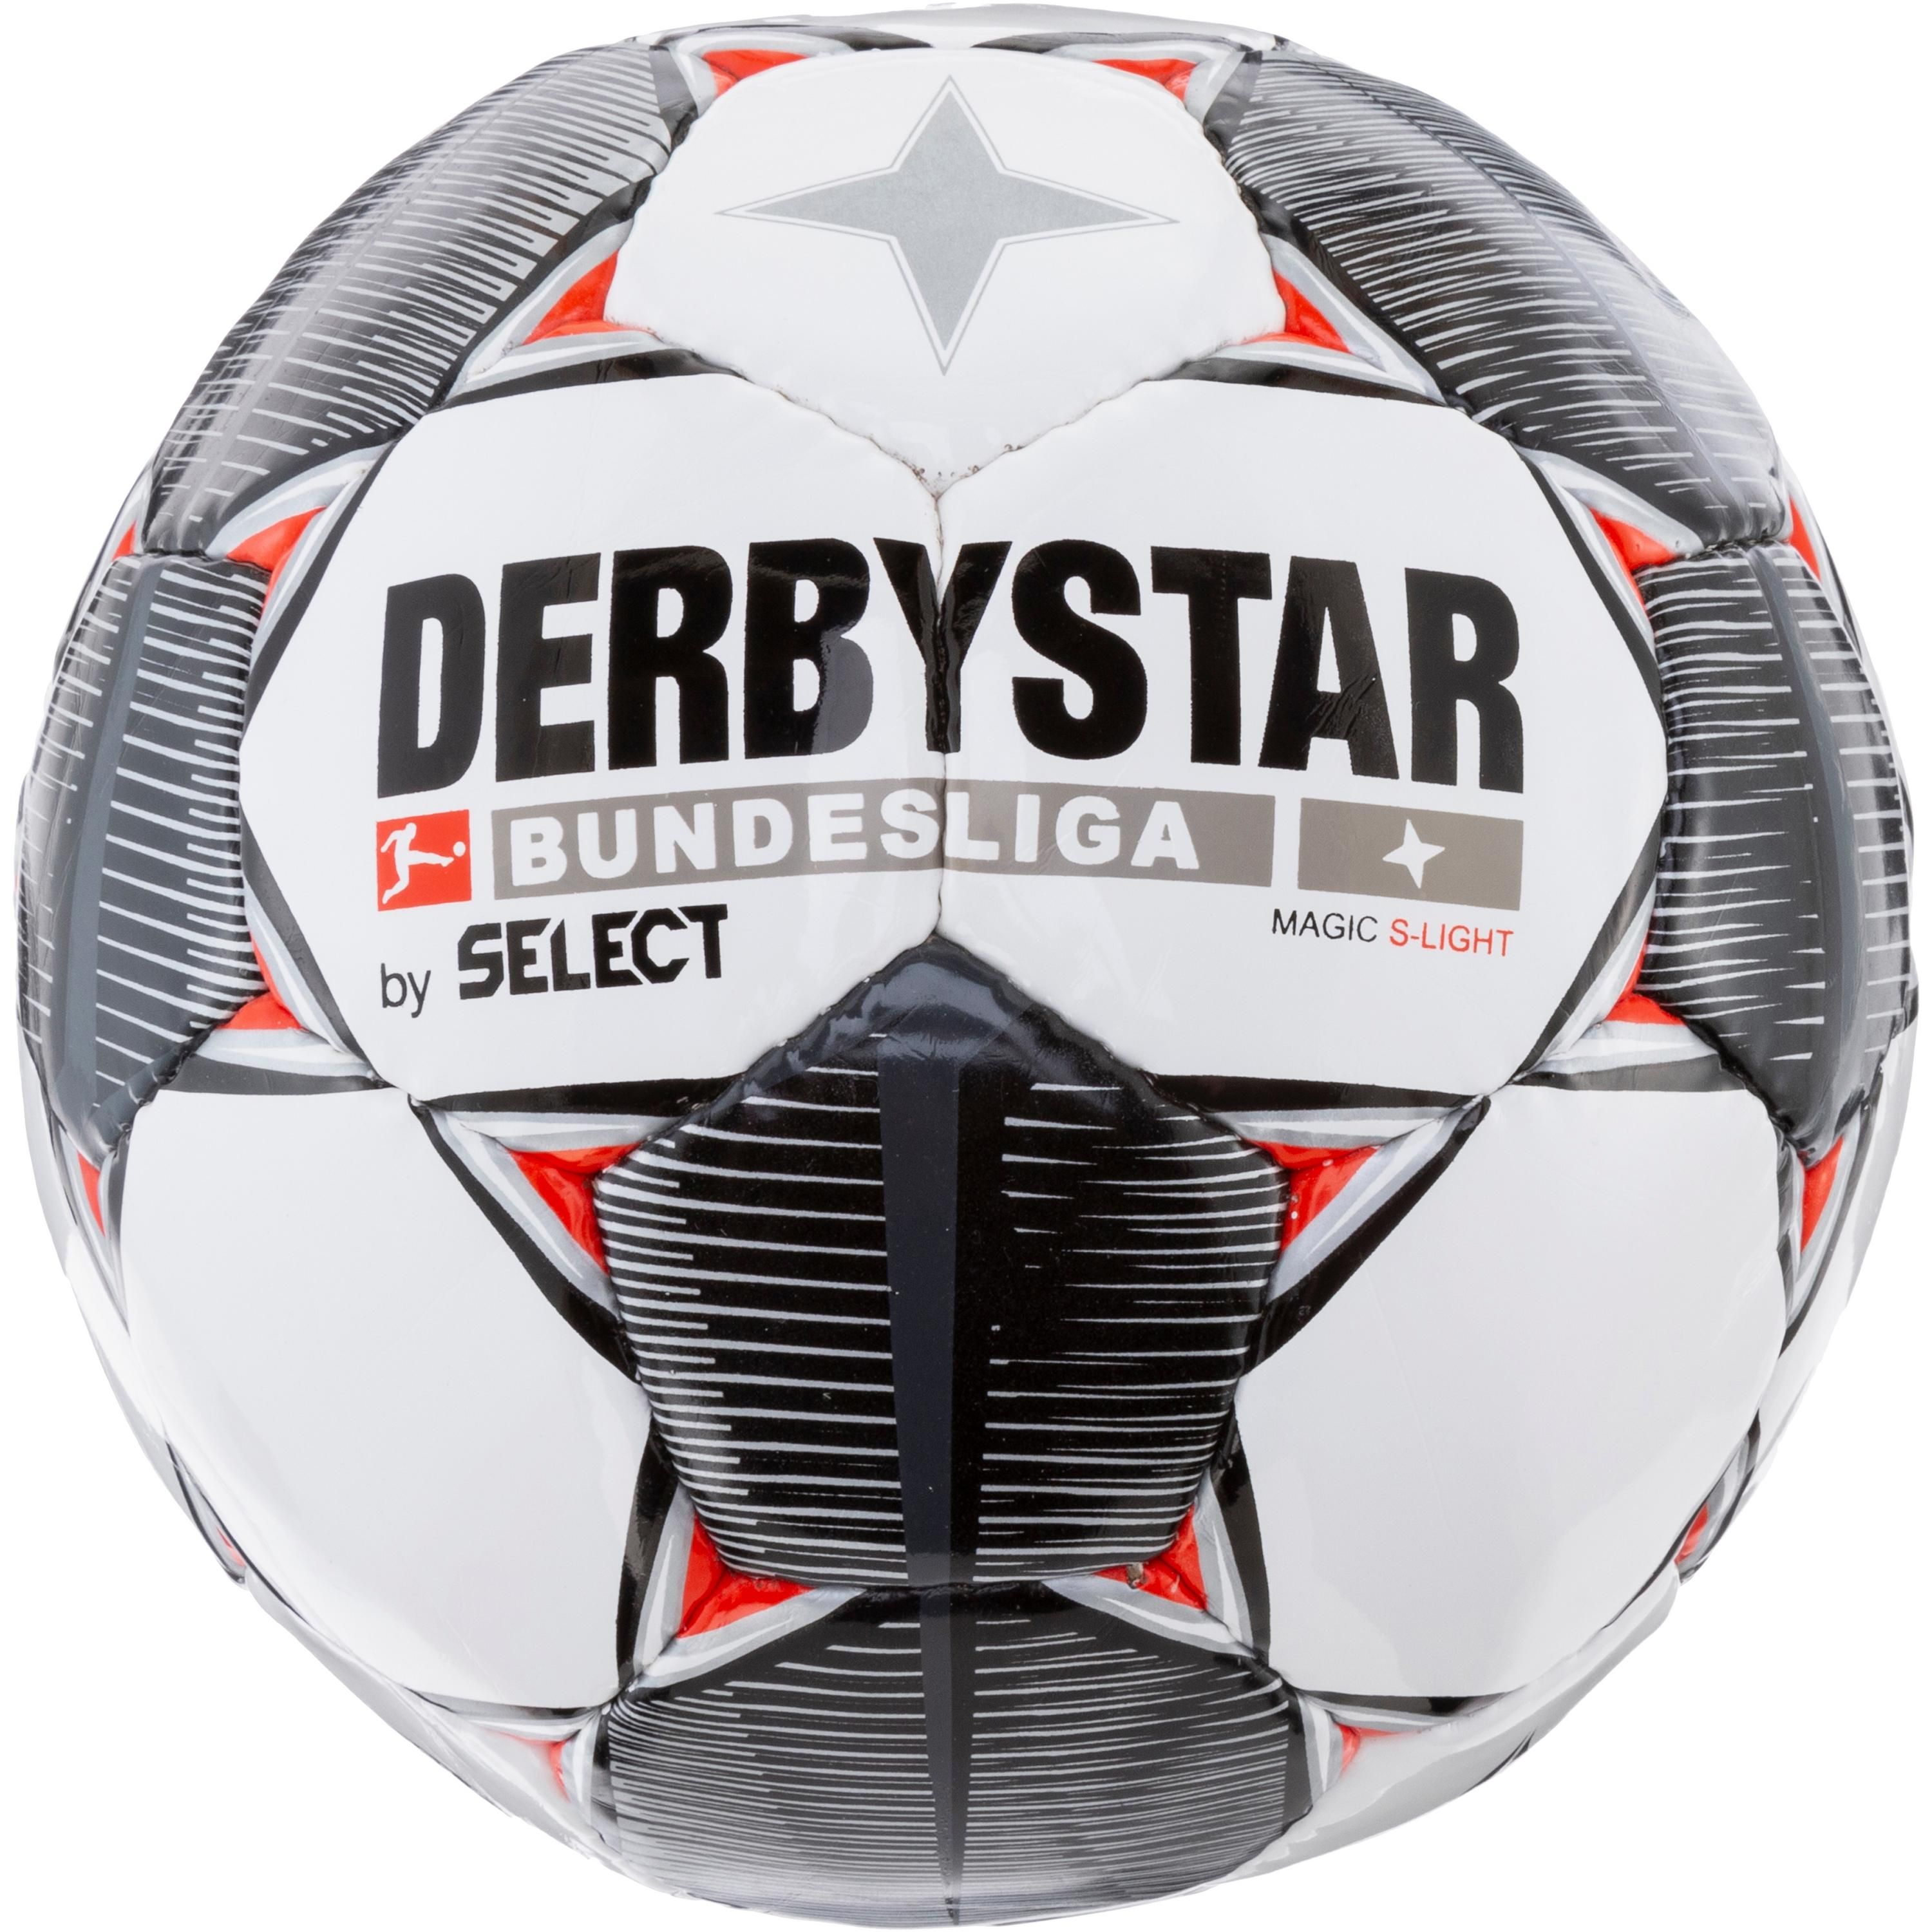 Derbystar Magic S-Light Bundesliga 19/20 290gr Fußball